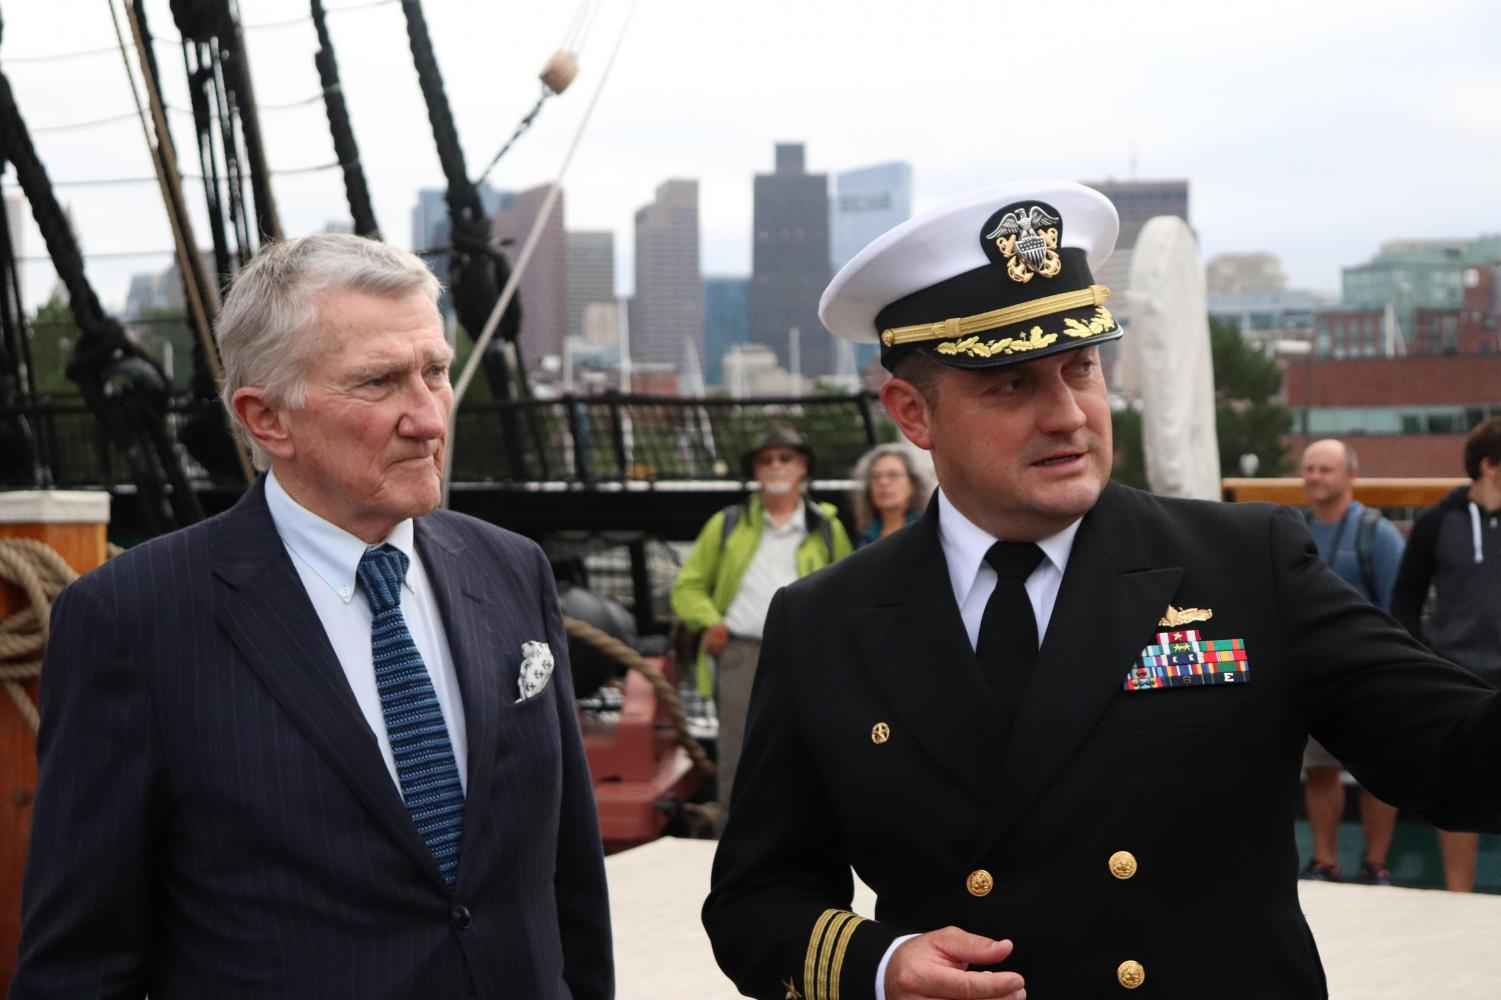 Former Navy Secretary John Lehman (left) with Commanding Officer Nathaniel R. Shick